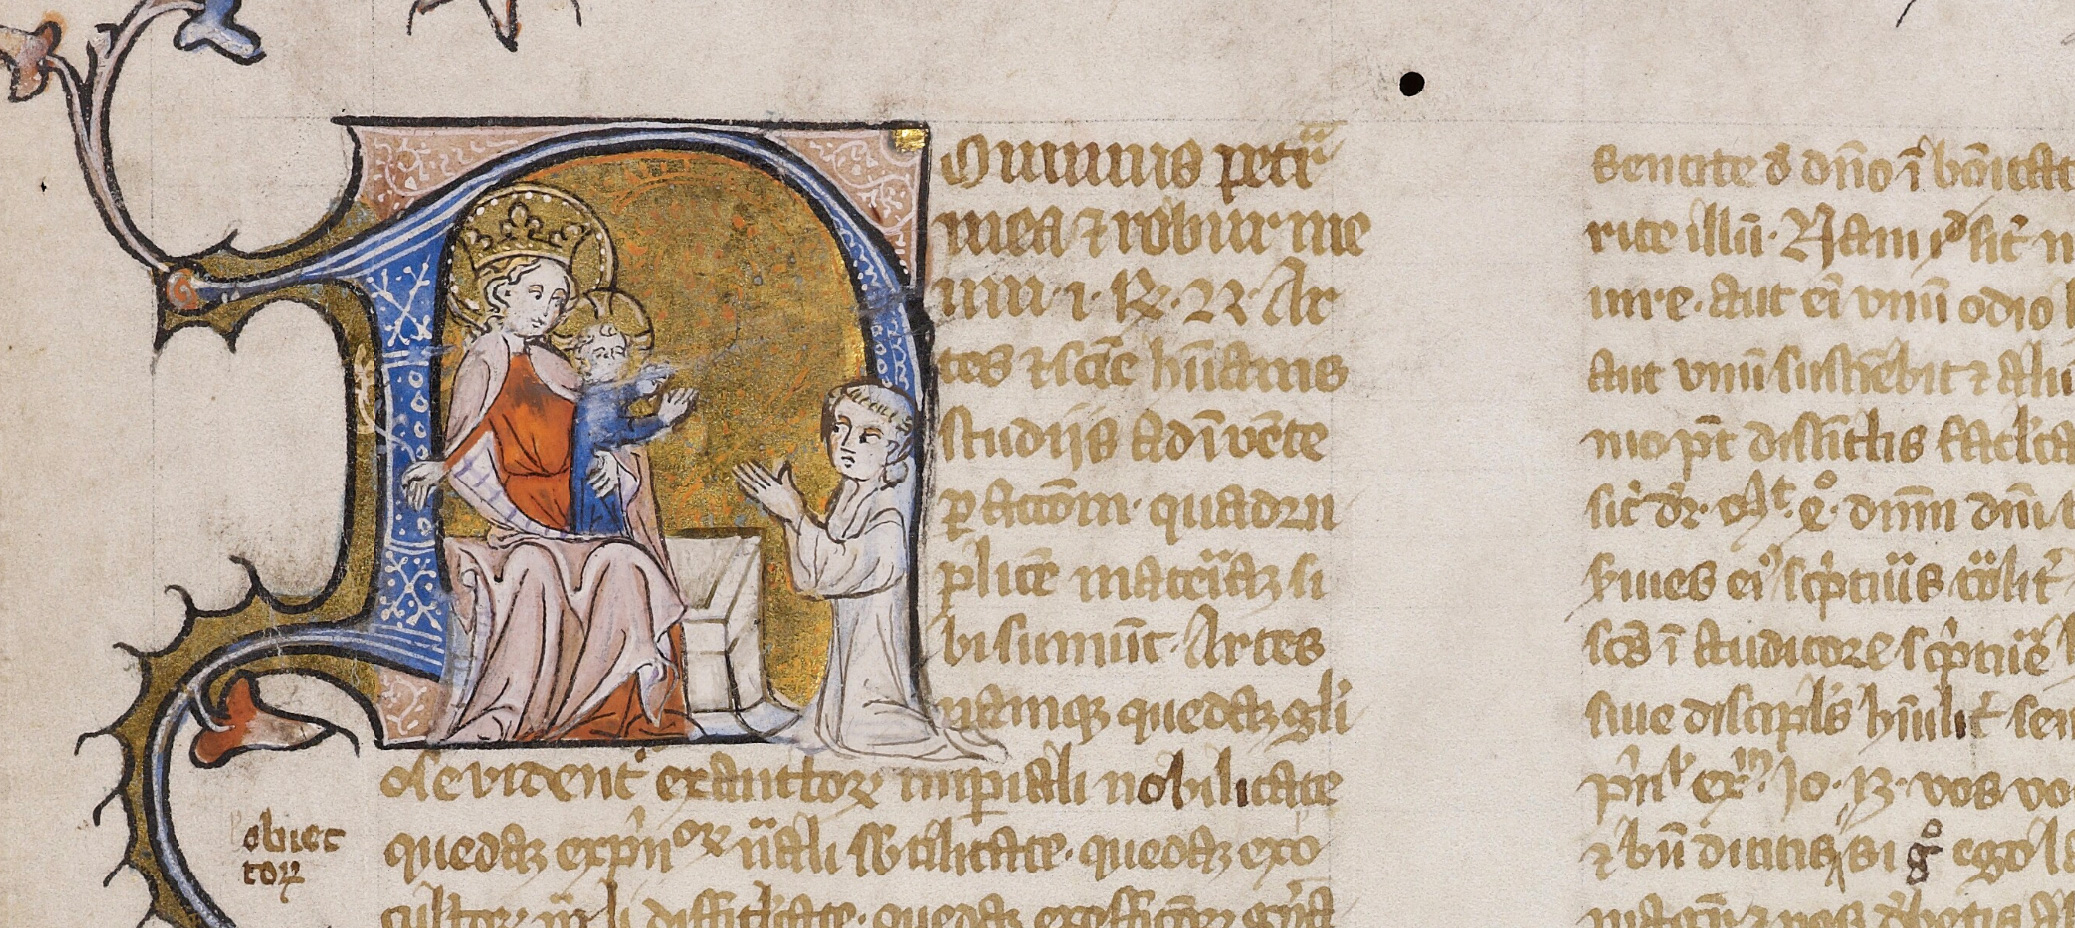 Bodleian Library MS. Laud Misc. 562, fol. 1r